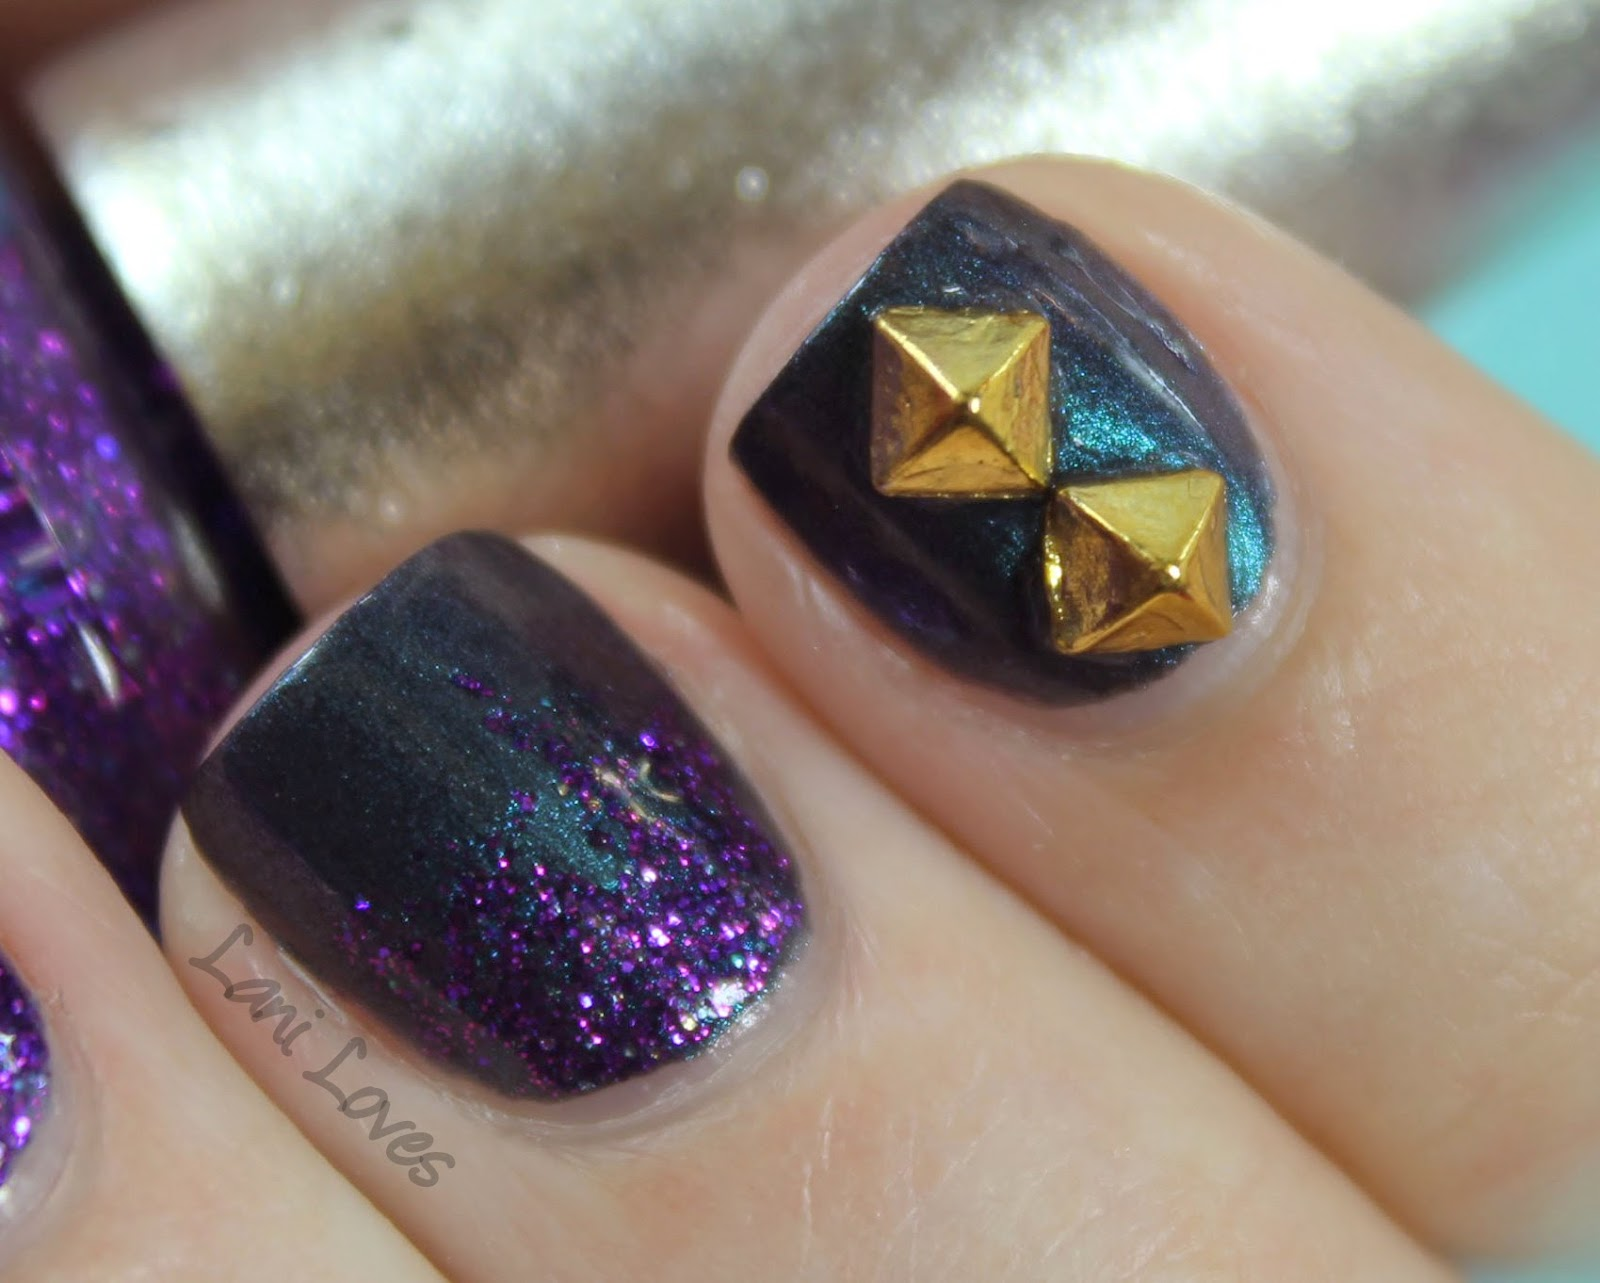 Born Pretty Store Stud Review - OPI DS Temptation & Kiko Venom Teal Swatches, Review, Nail Art